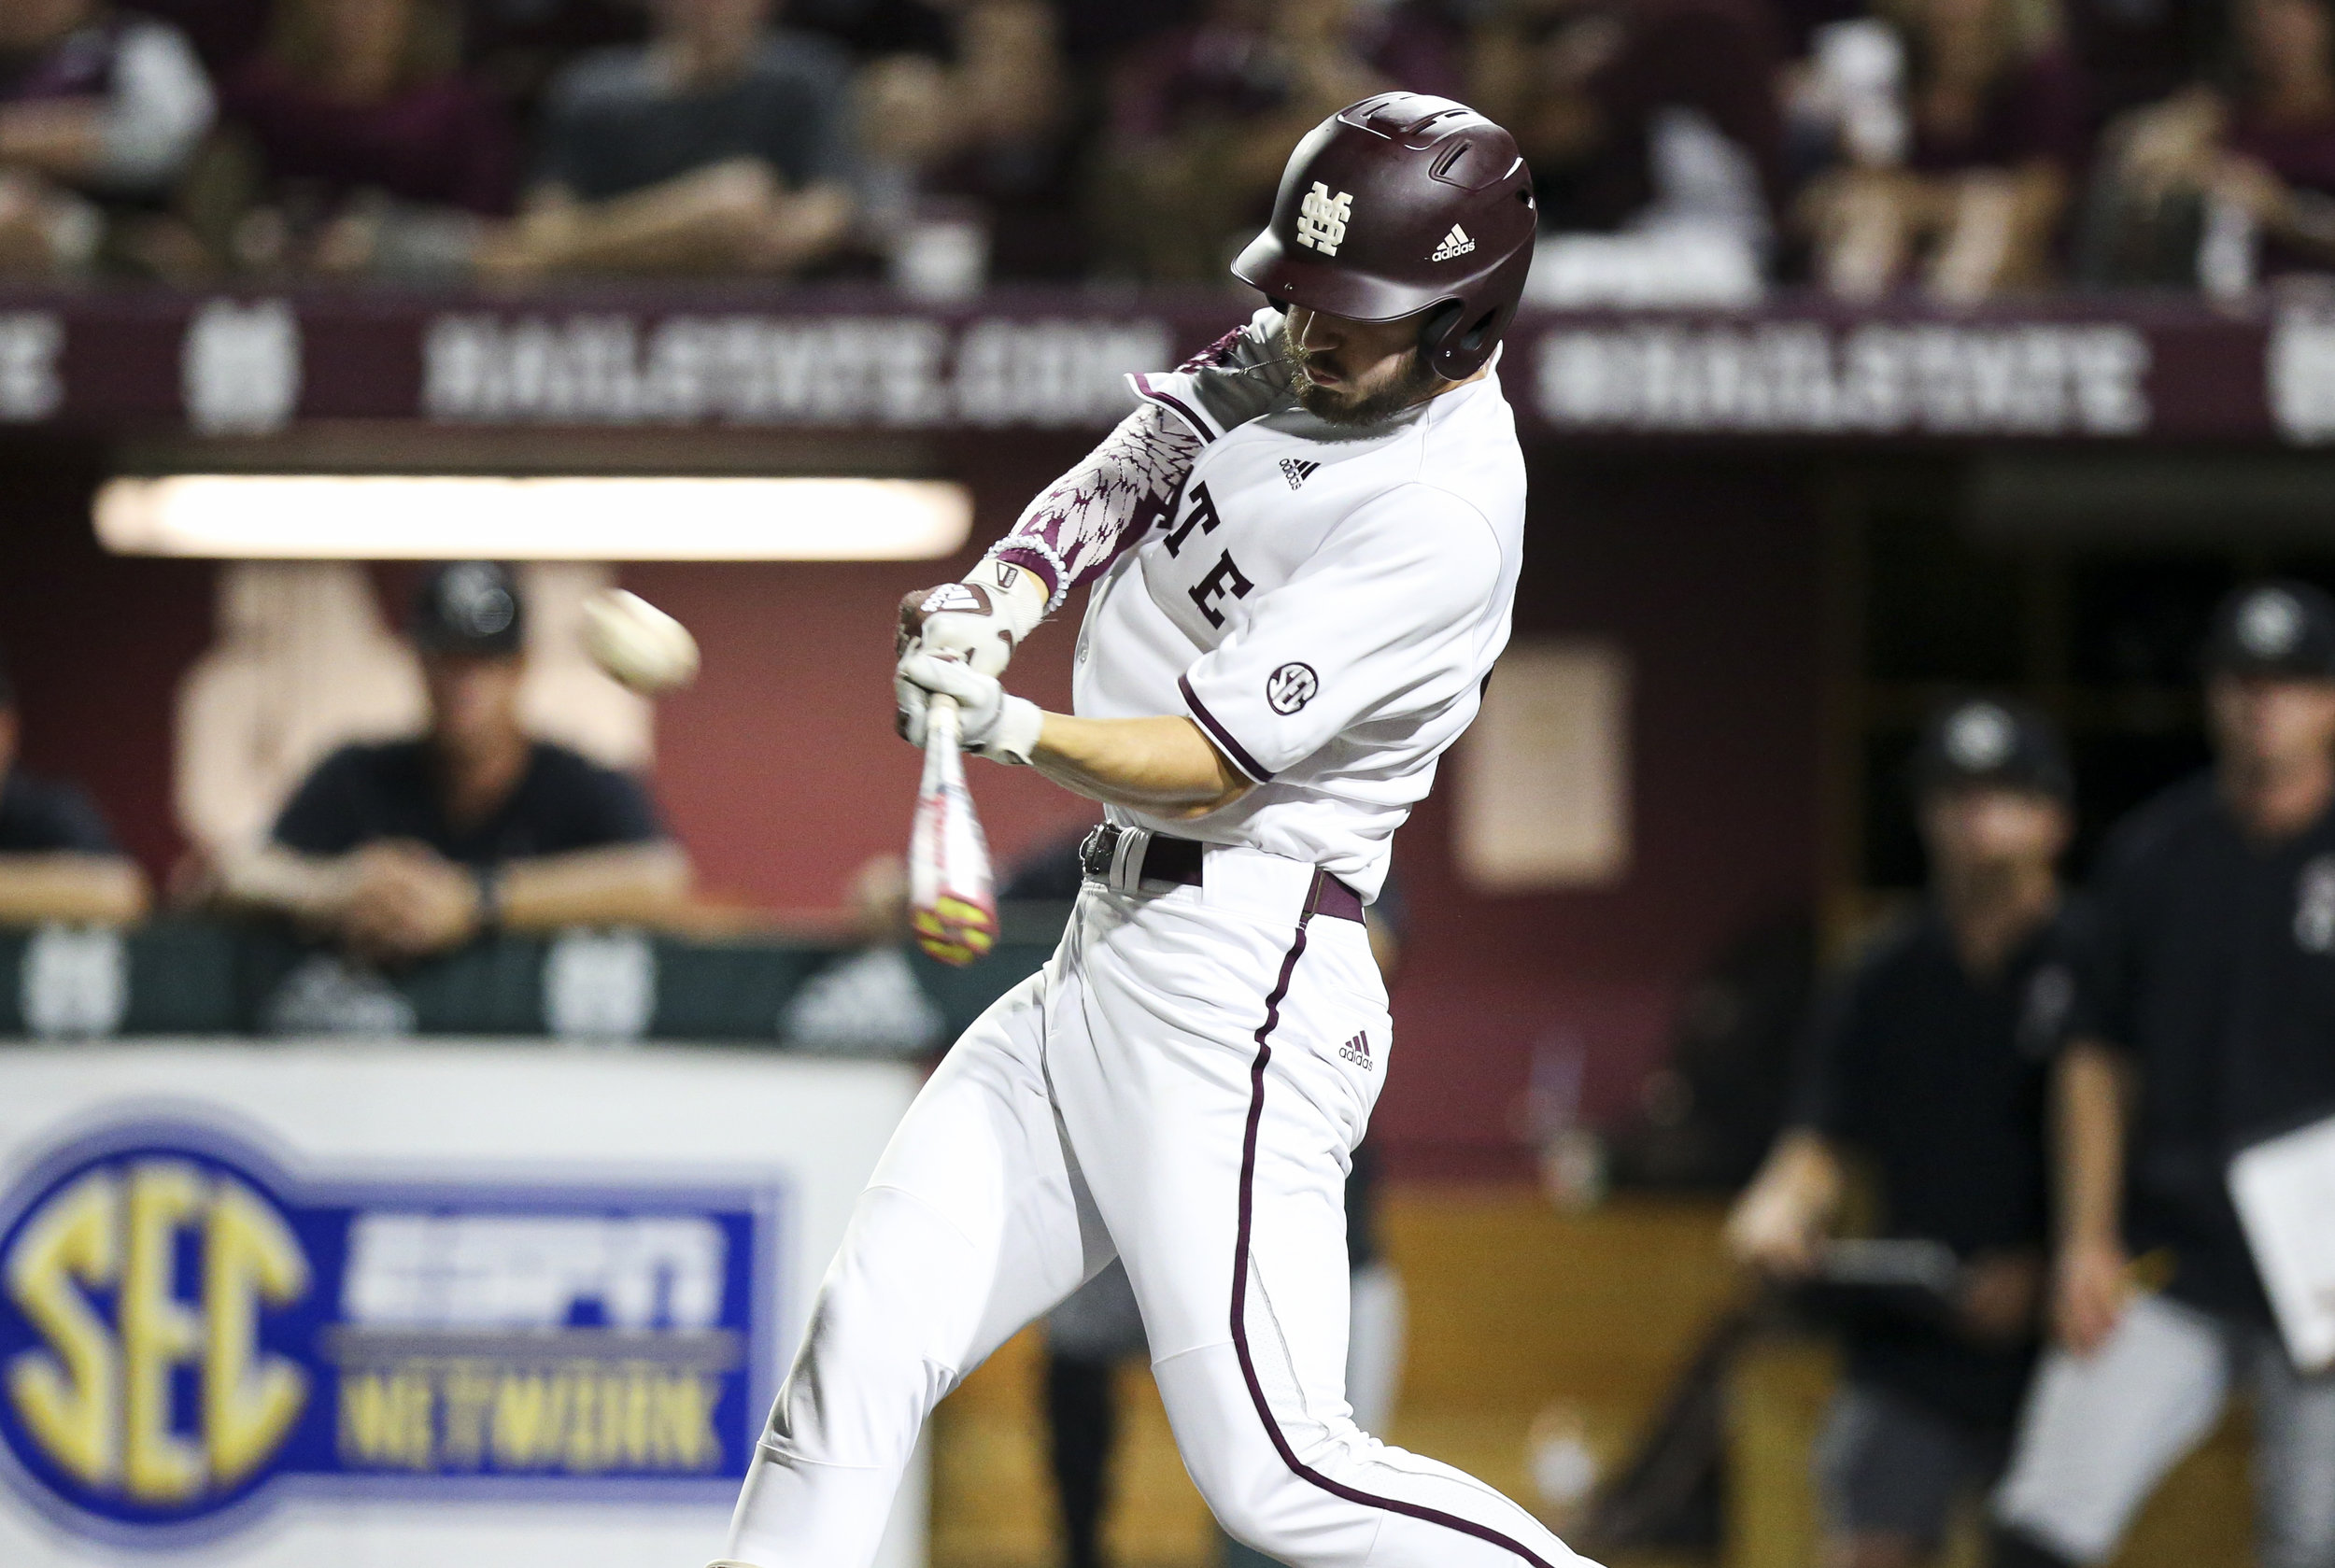 Photo by Kelly Donoho courtesy of Mississippi State Athletics